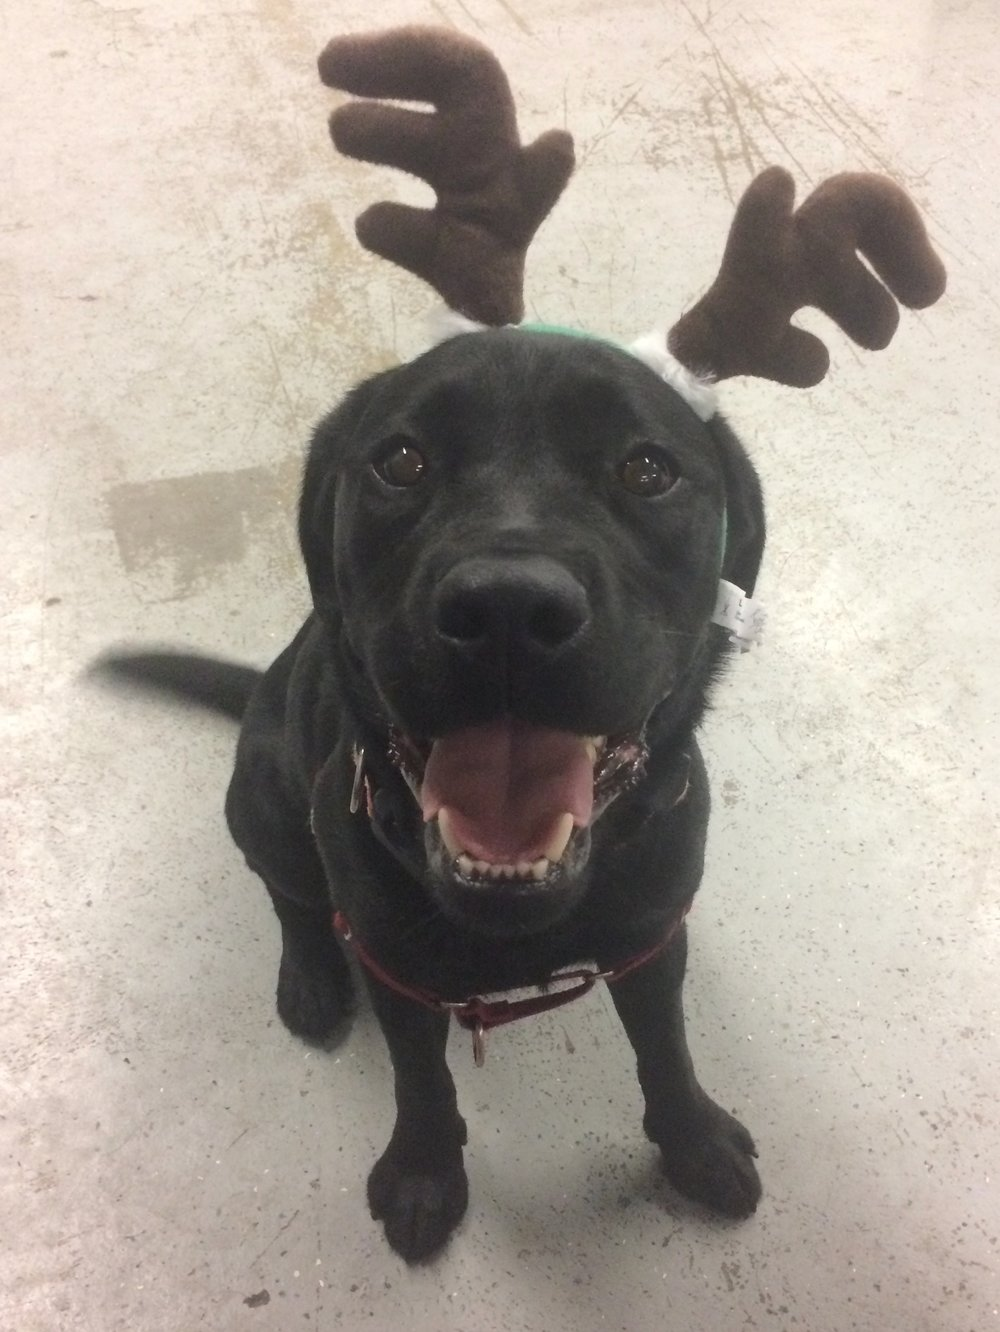 Our little reindeer sends you Christmas greetings!